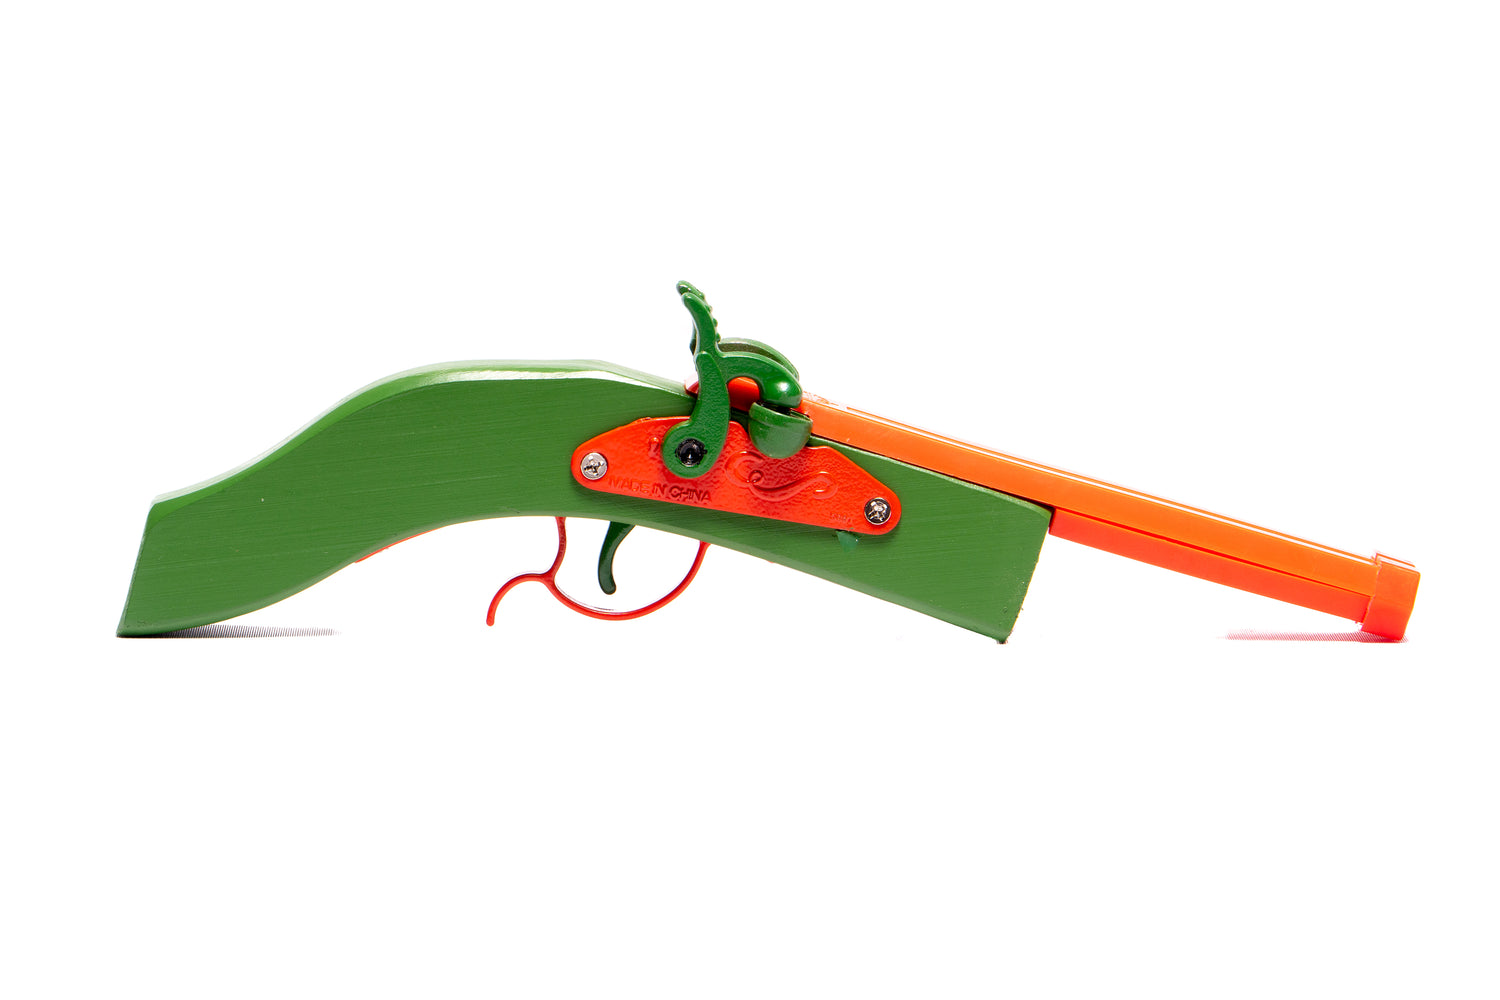 COLORED HEX DOUBLE BARREL TOY PISTOL